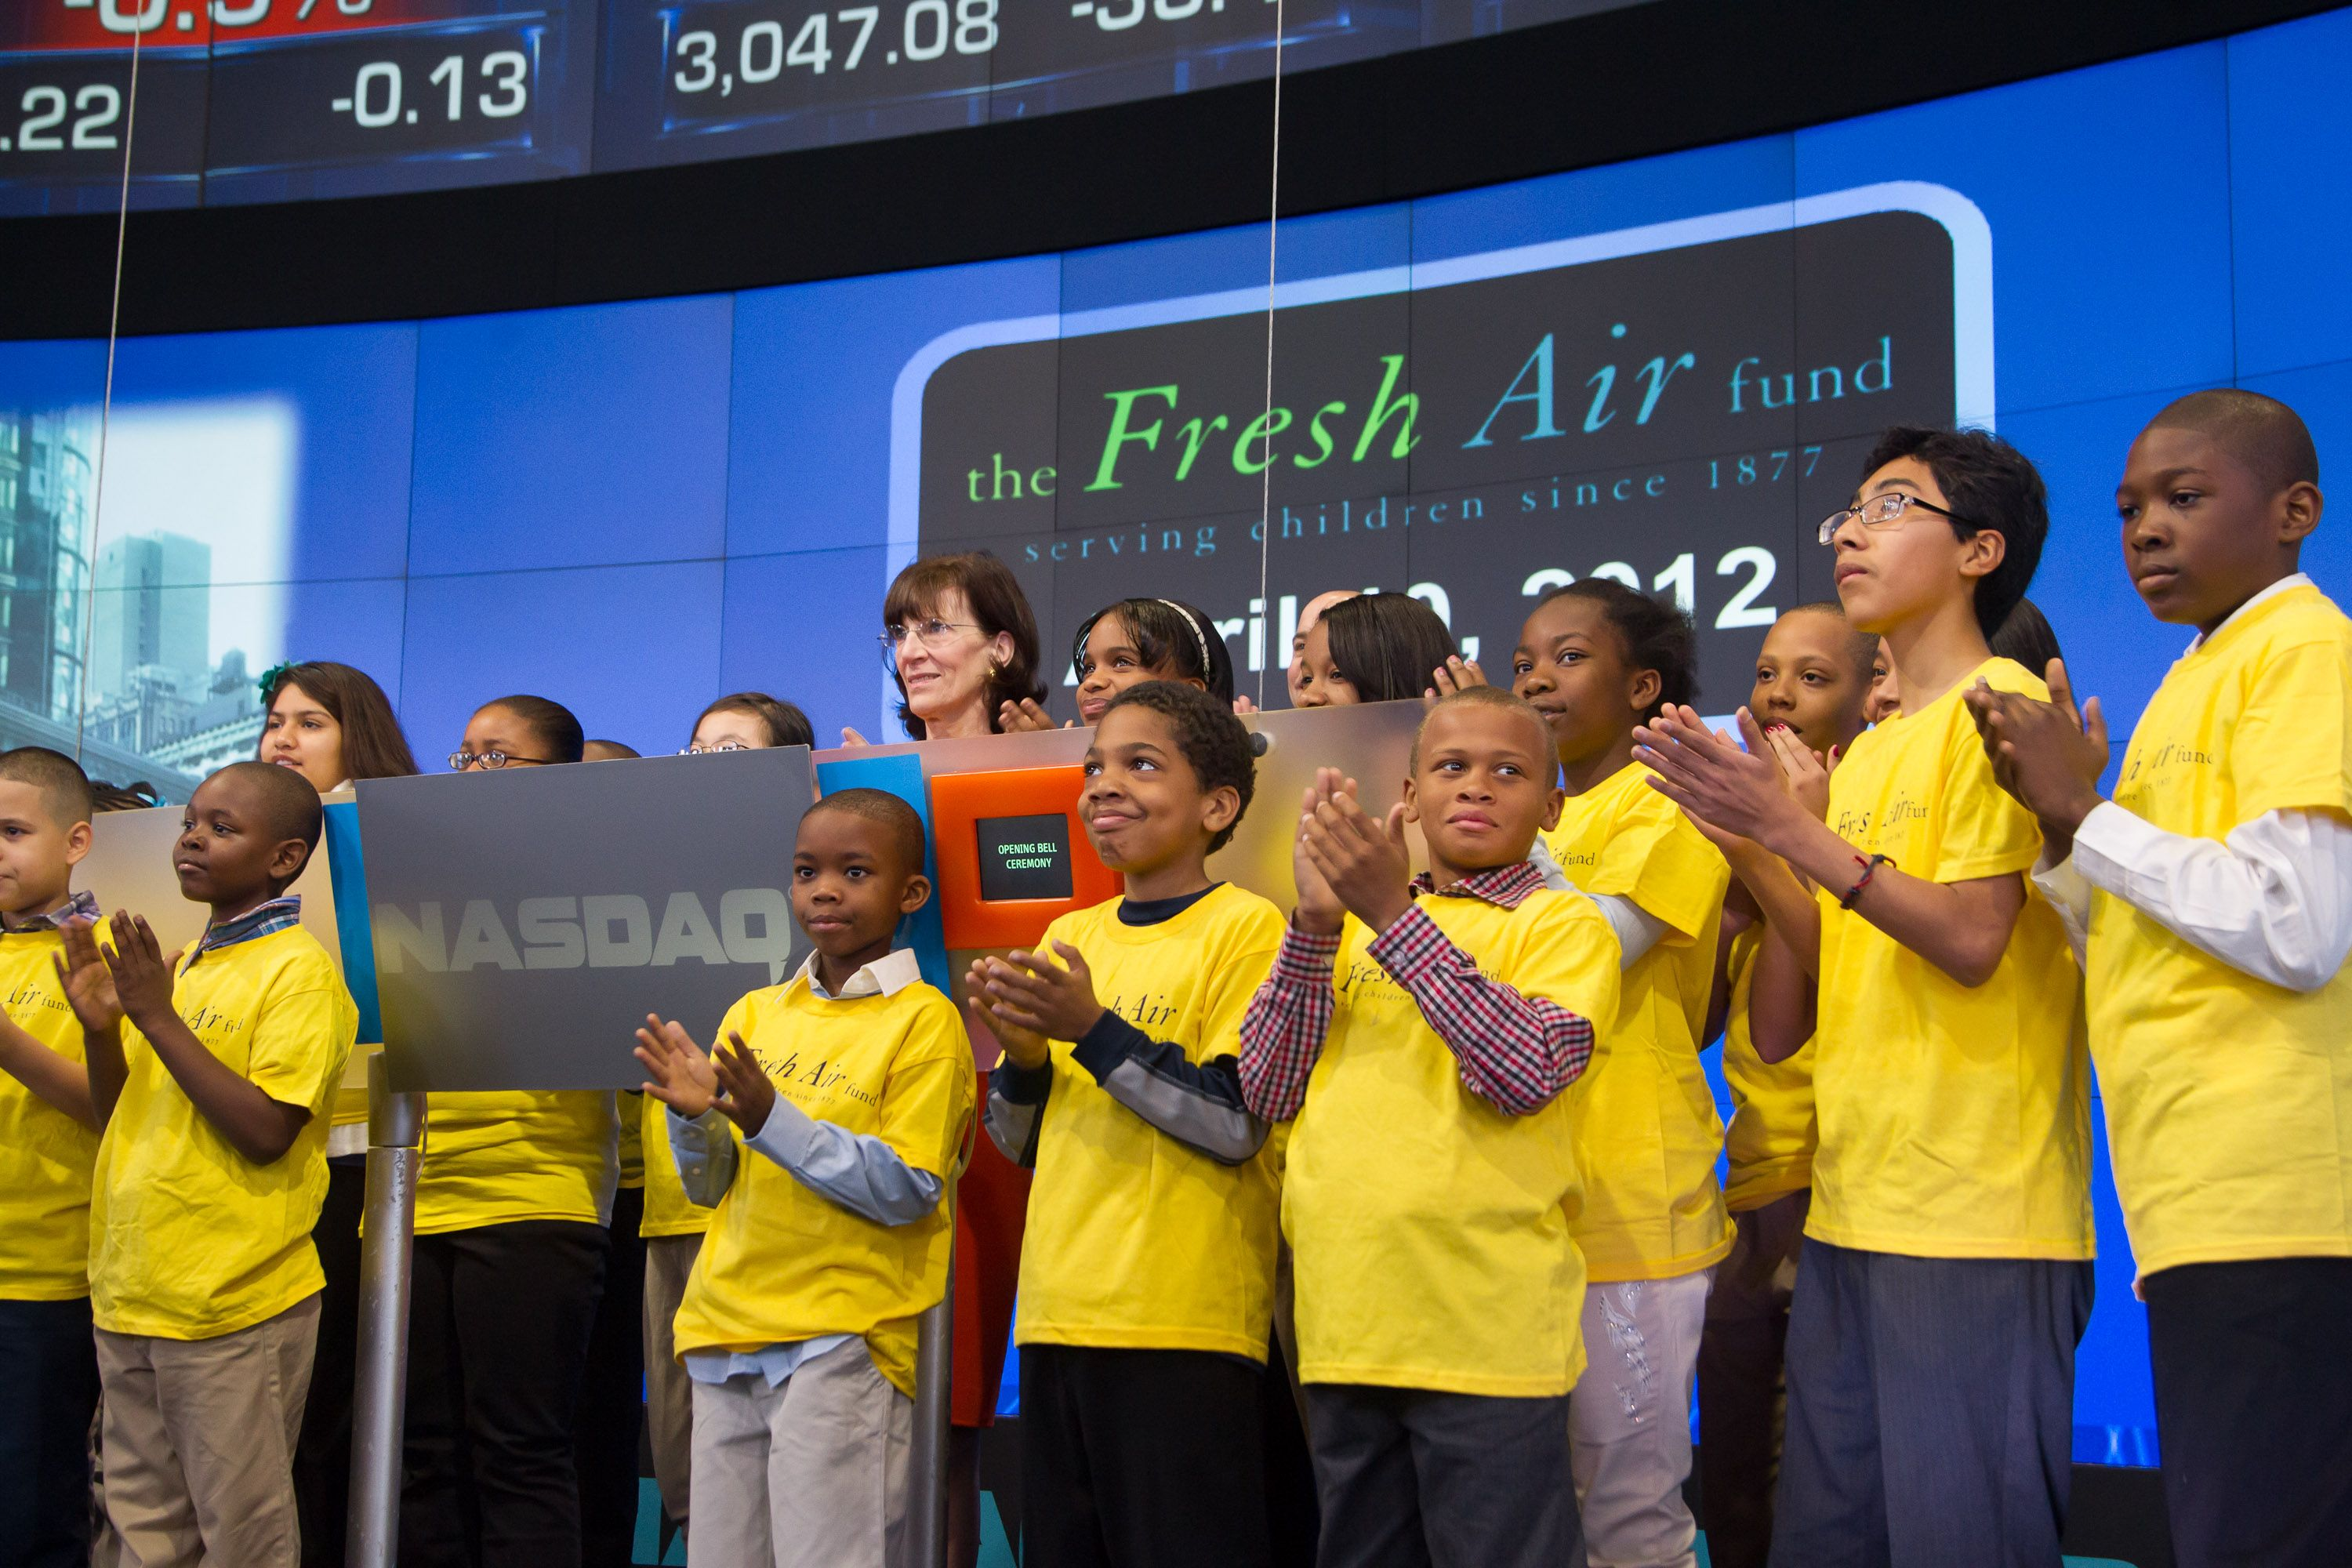 The Fresh Air Fund S Executive Director Jenny Morgenthau Was Joined By A Group Of Excited Fresh Air Children To Ring Nasdaq Stock Market Nasdaq Stock Market